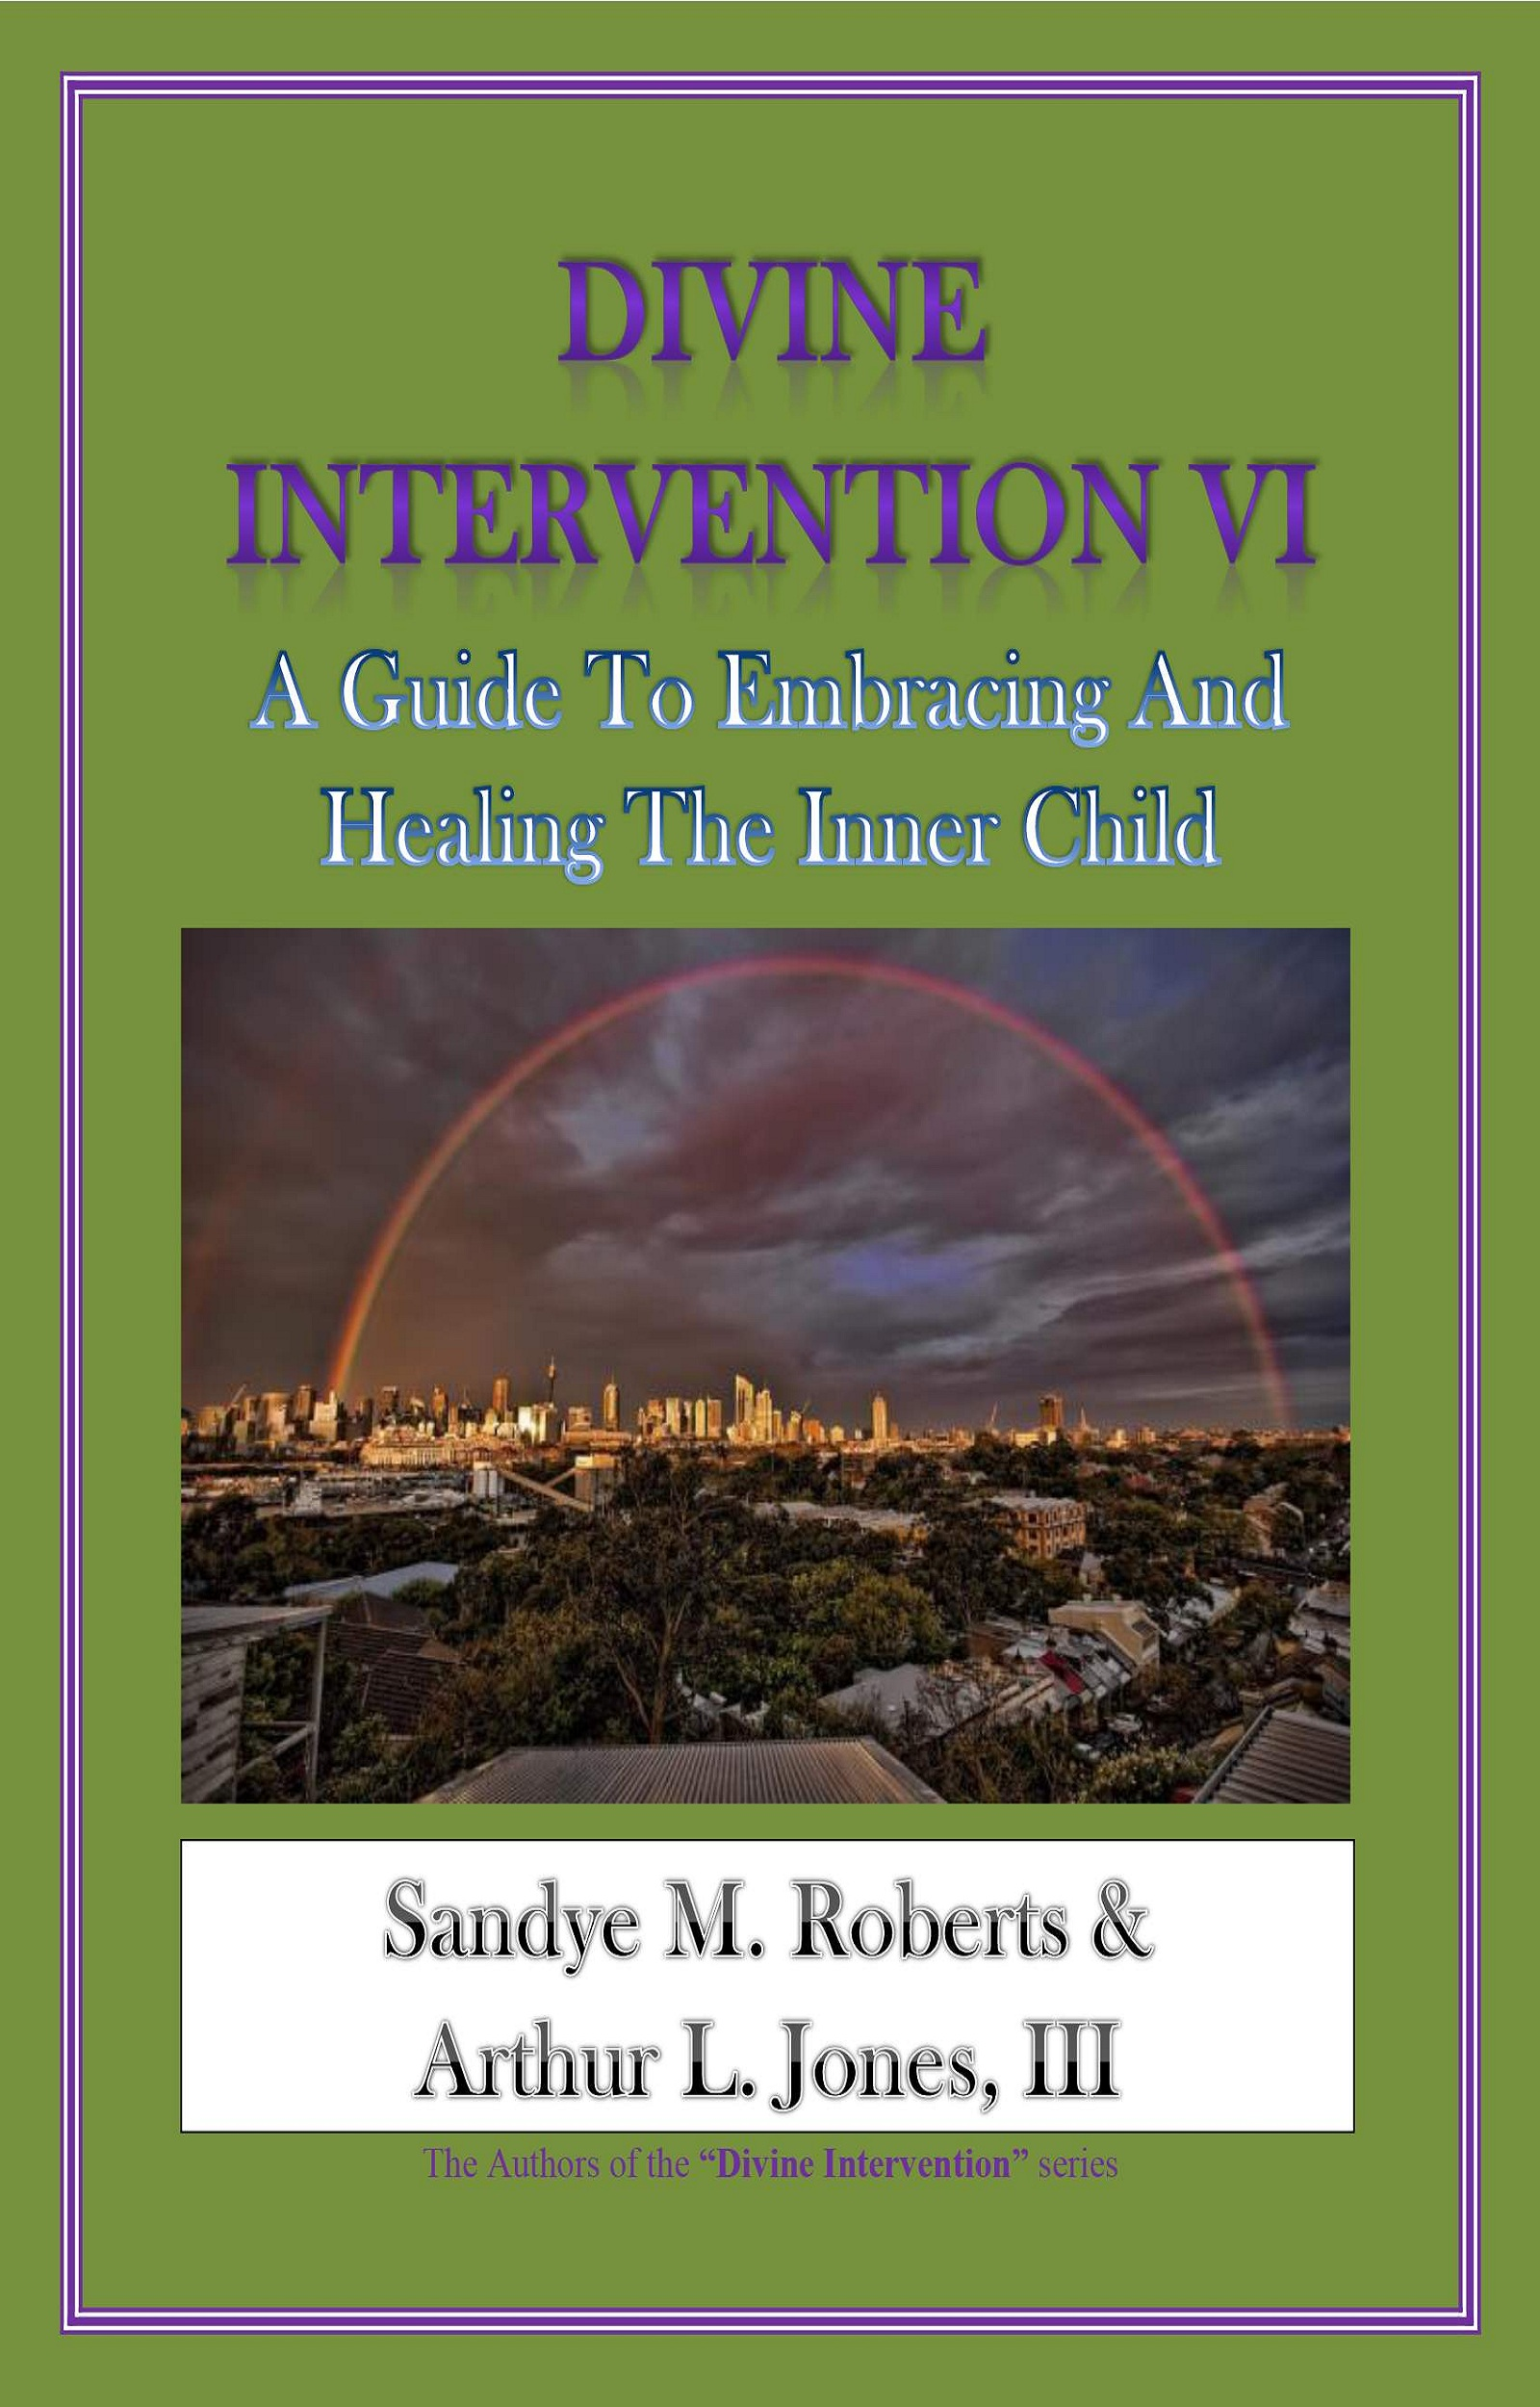 Arthur Jones III - Divine Intervention VI: A Guide To Embracing And Healing The Inner Child